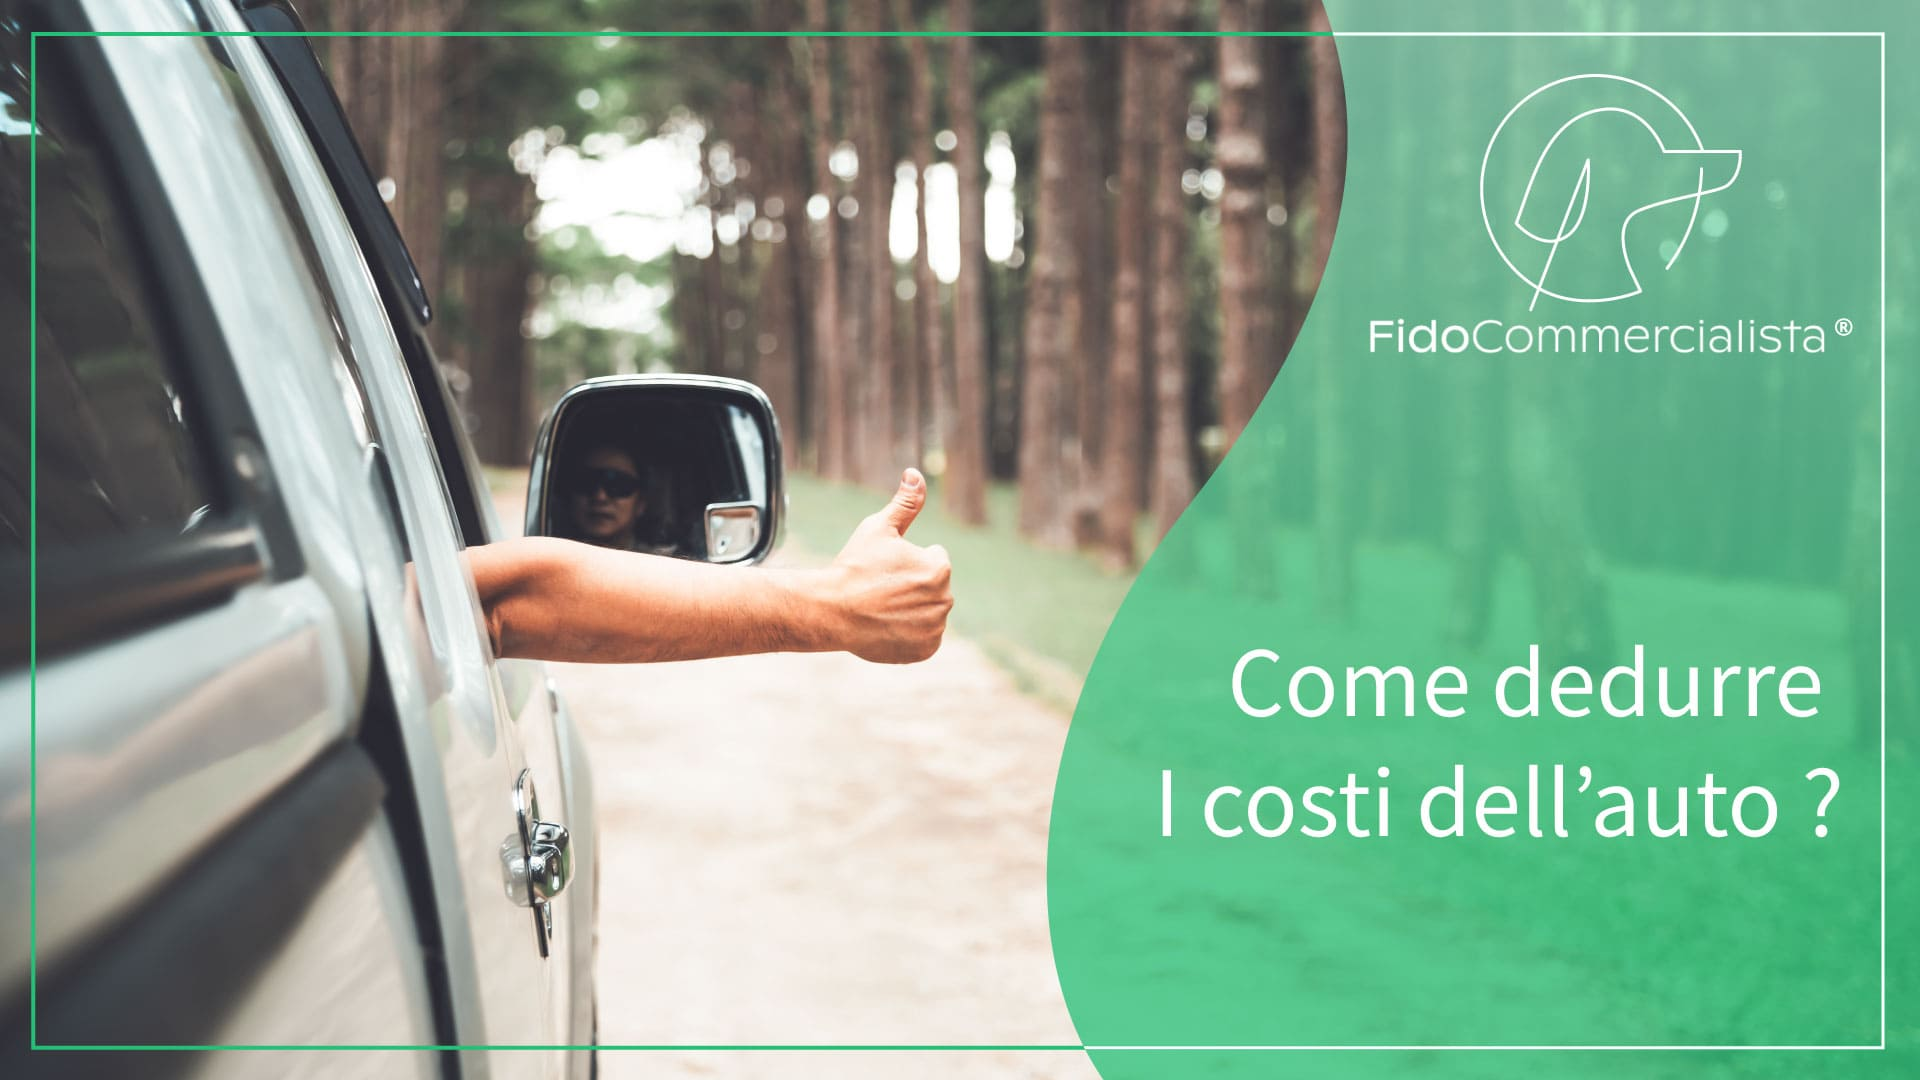 Come dedurre i costi dell'auto